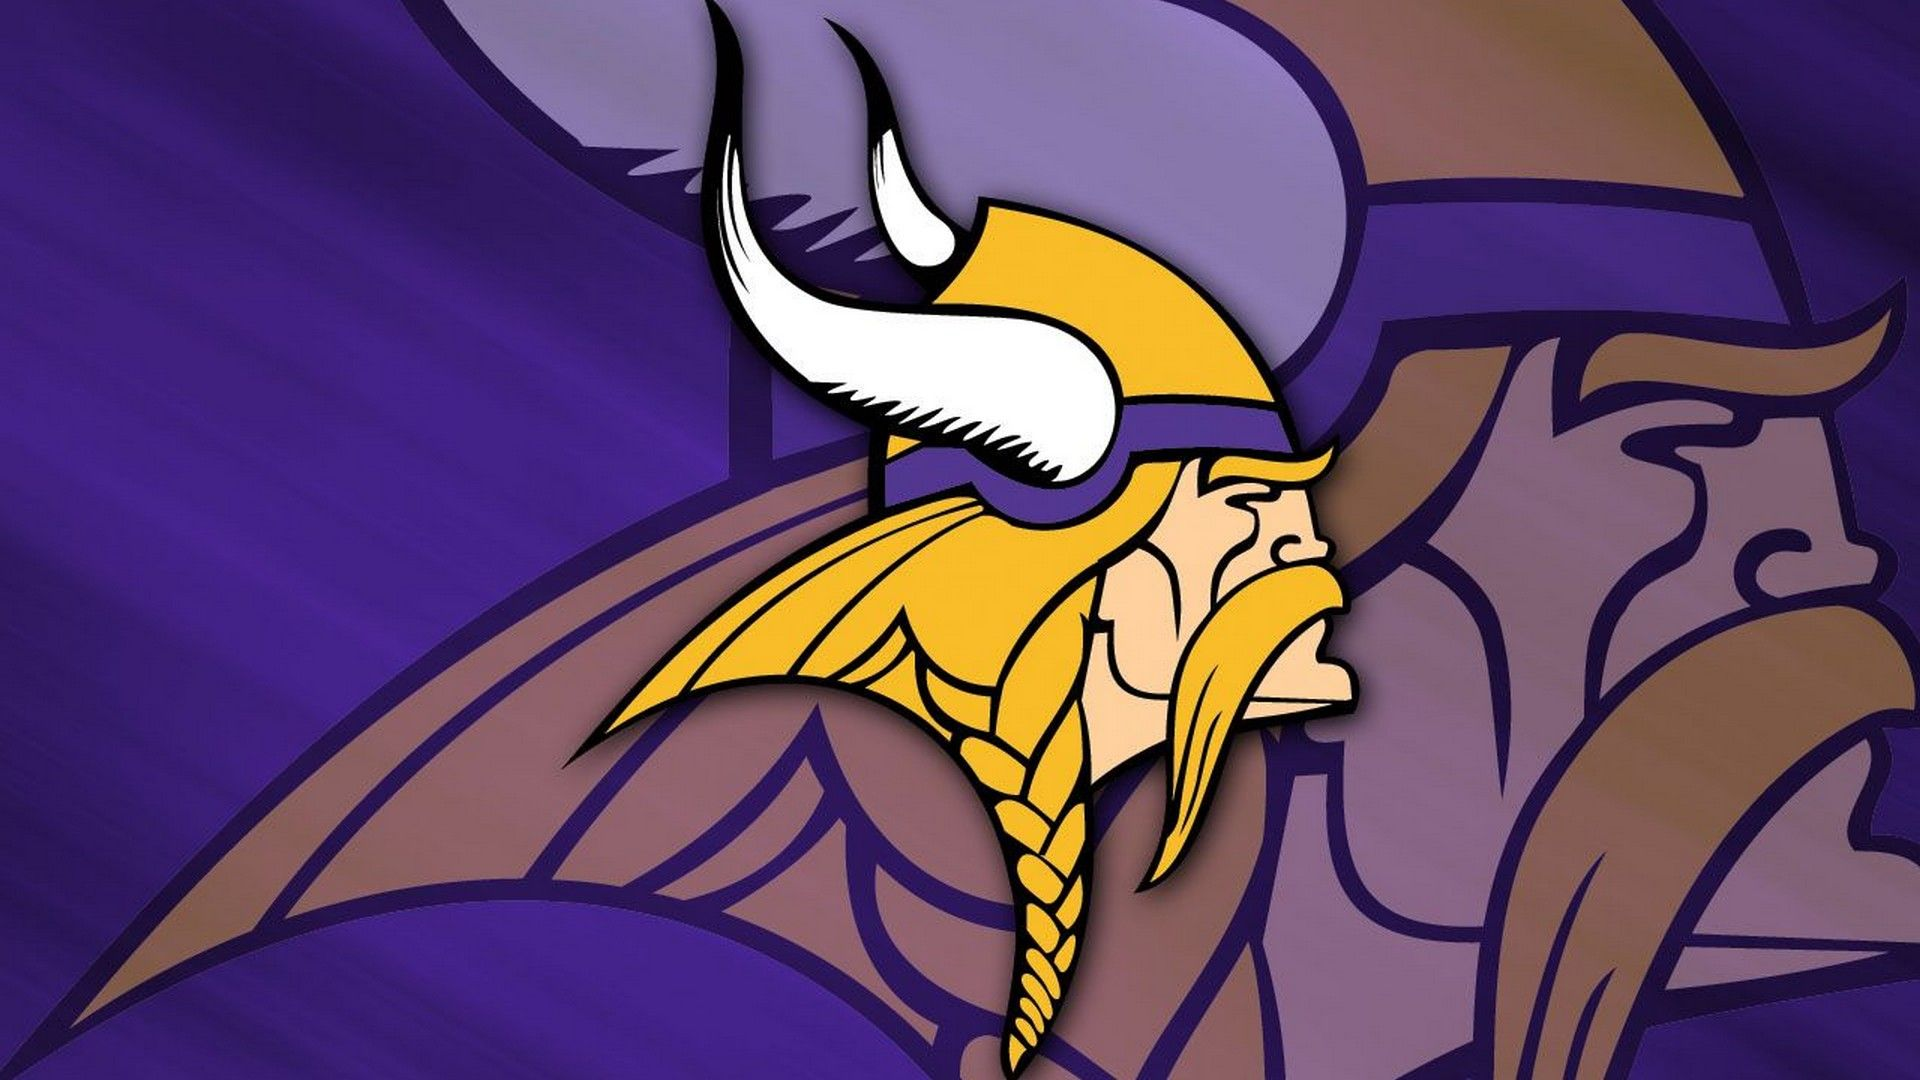 Backgrounds Minnesota Vikings HD (With images) Minnesota